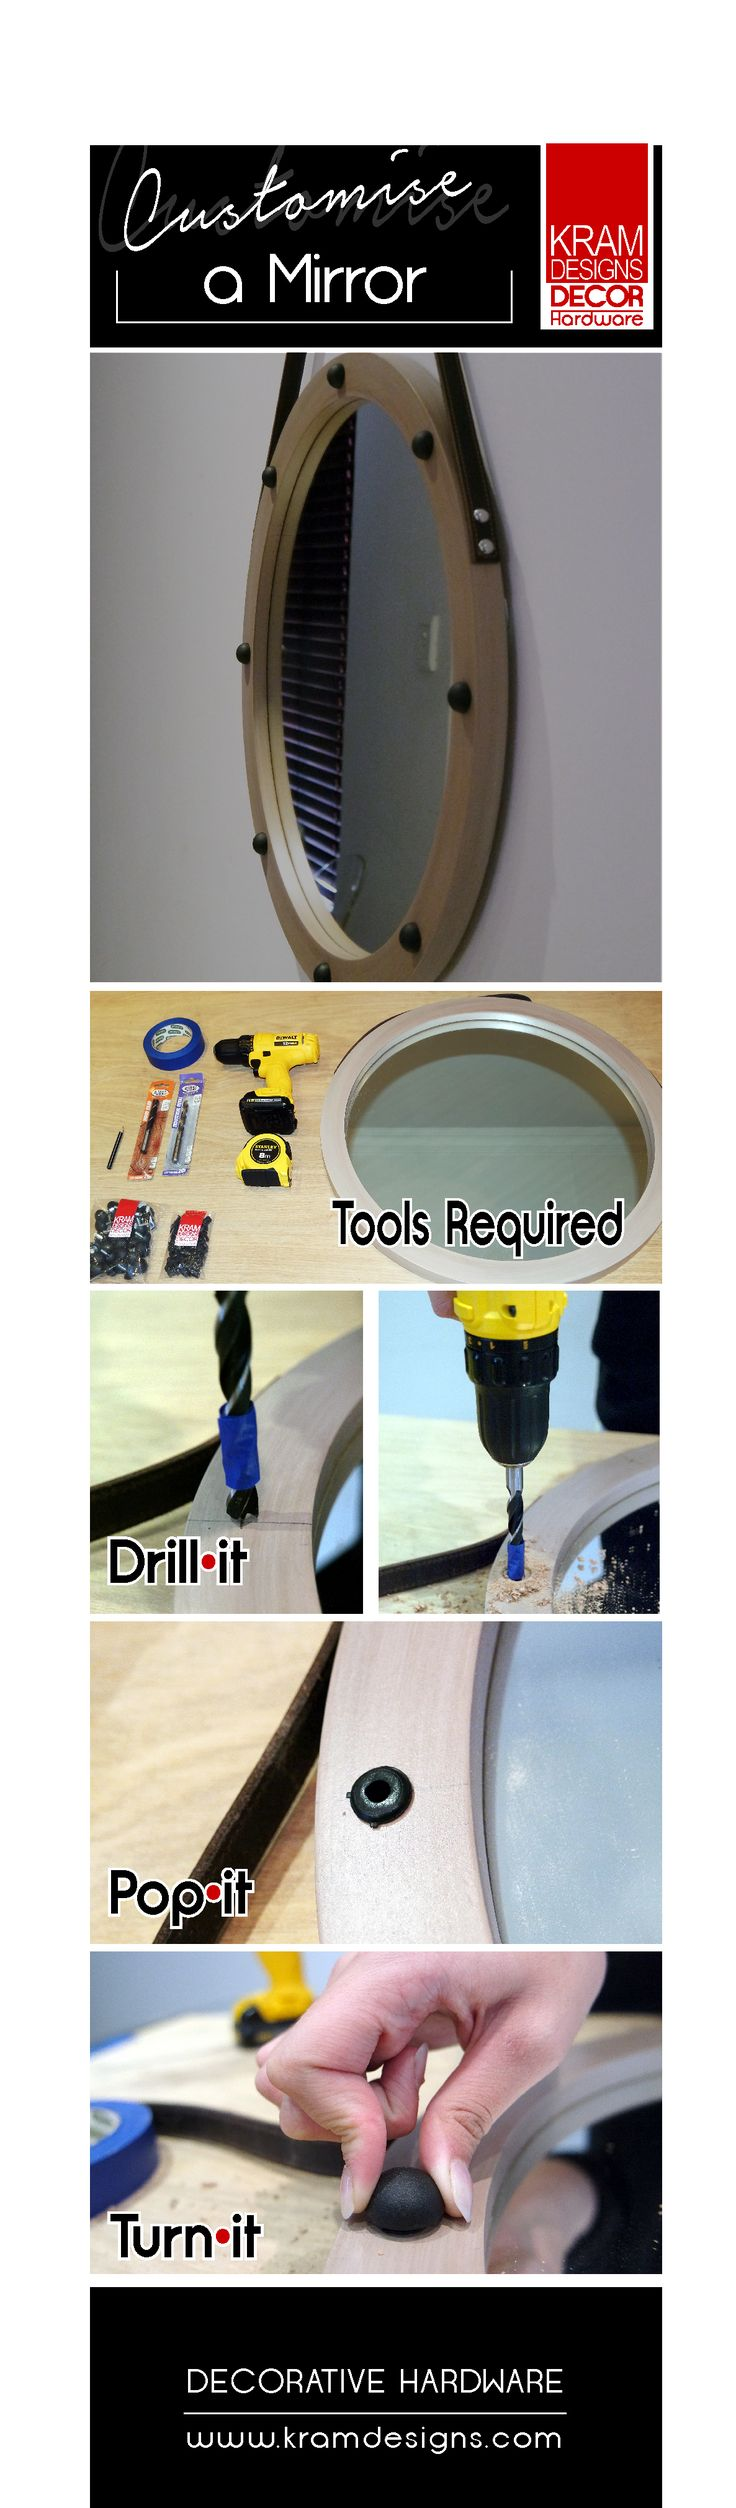 Customise your mirror with Kram Designs Decor Hardware. It's as easy as 1,2,3!